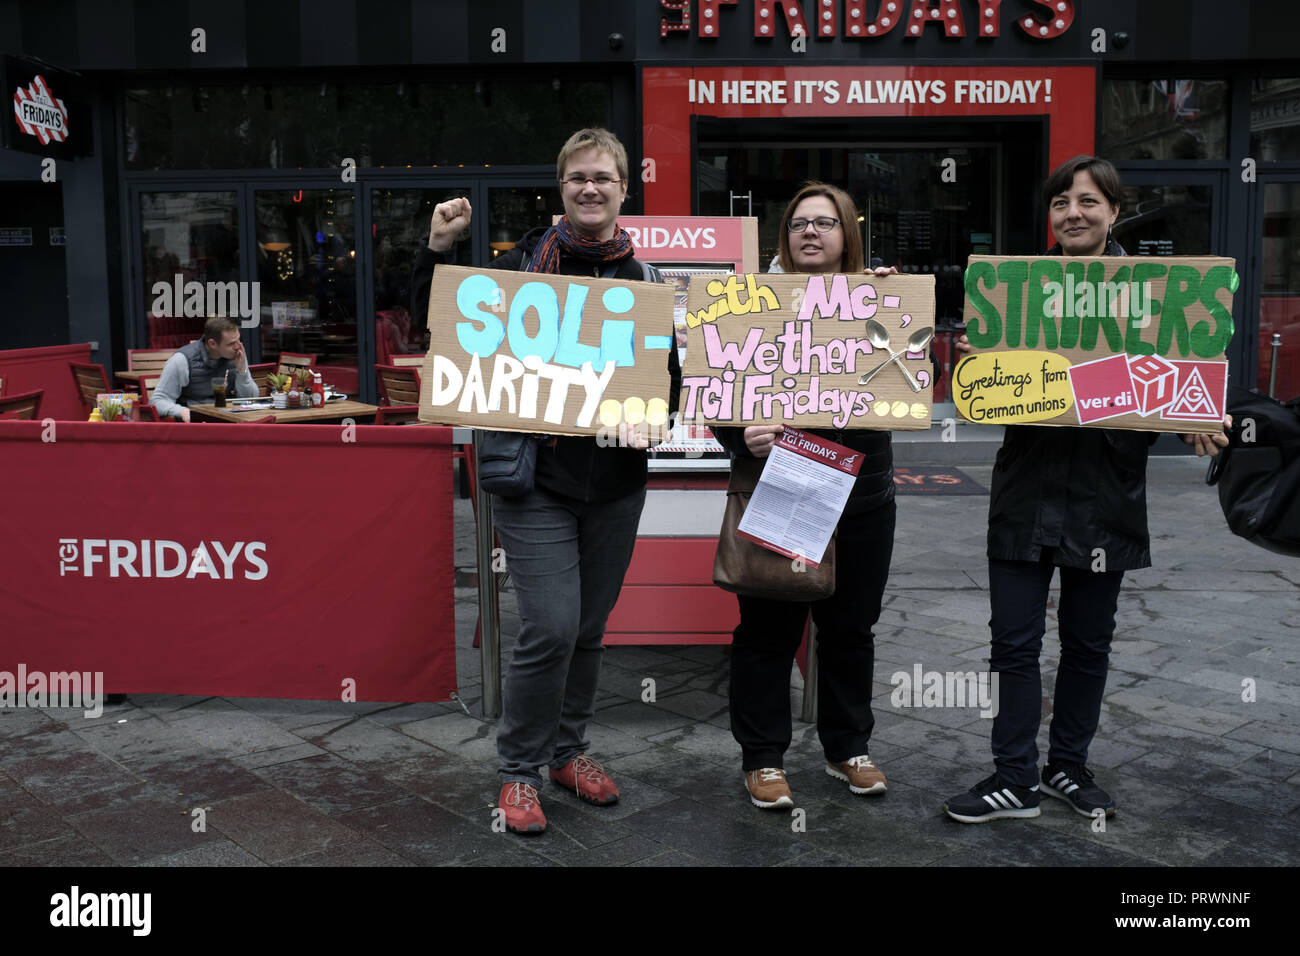 London, Greater London, UK. 5th Oct, 2018. Protesters seen holding posters in front of a TGI Fridays during the protest.Wetherspoons, TGI Fridays, and McDonald's workers rally together in London to demand better working conditions and a fair pay in the hospitality industry. Credit: Andres Pantoja/SOPA Images/ZUMA Wire/Alamy Live News - Stock Image